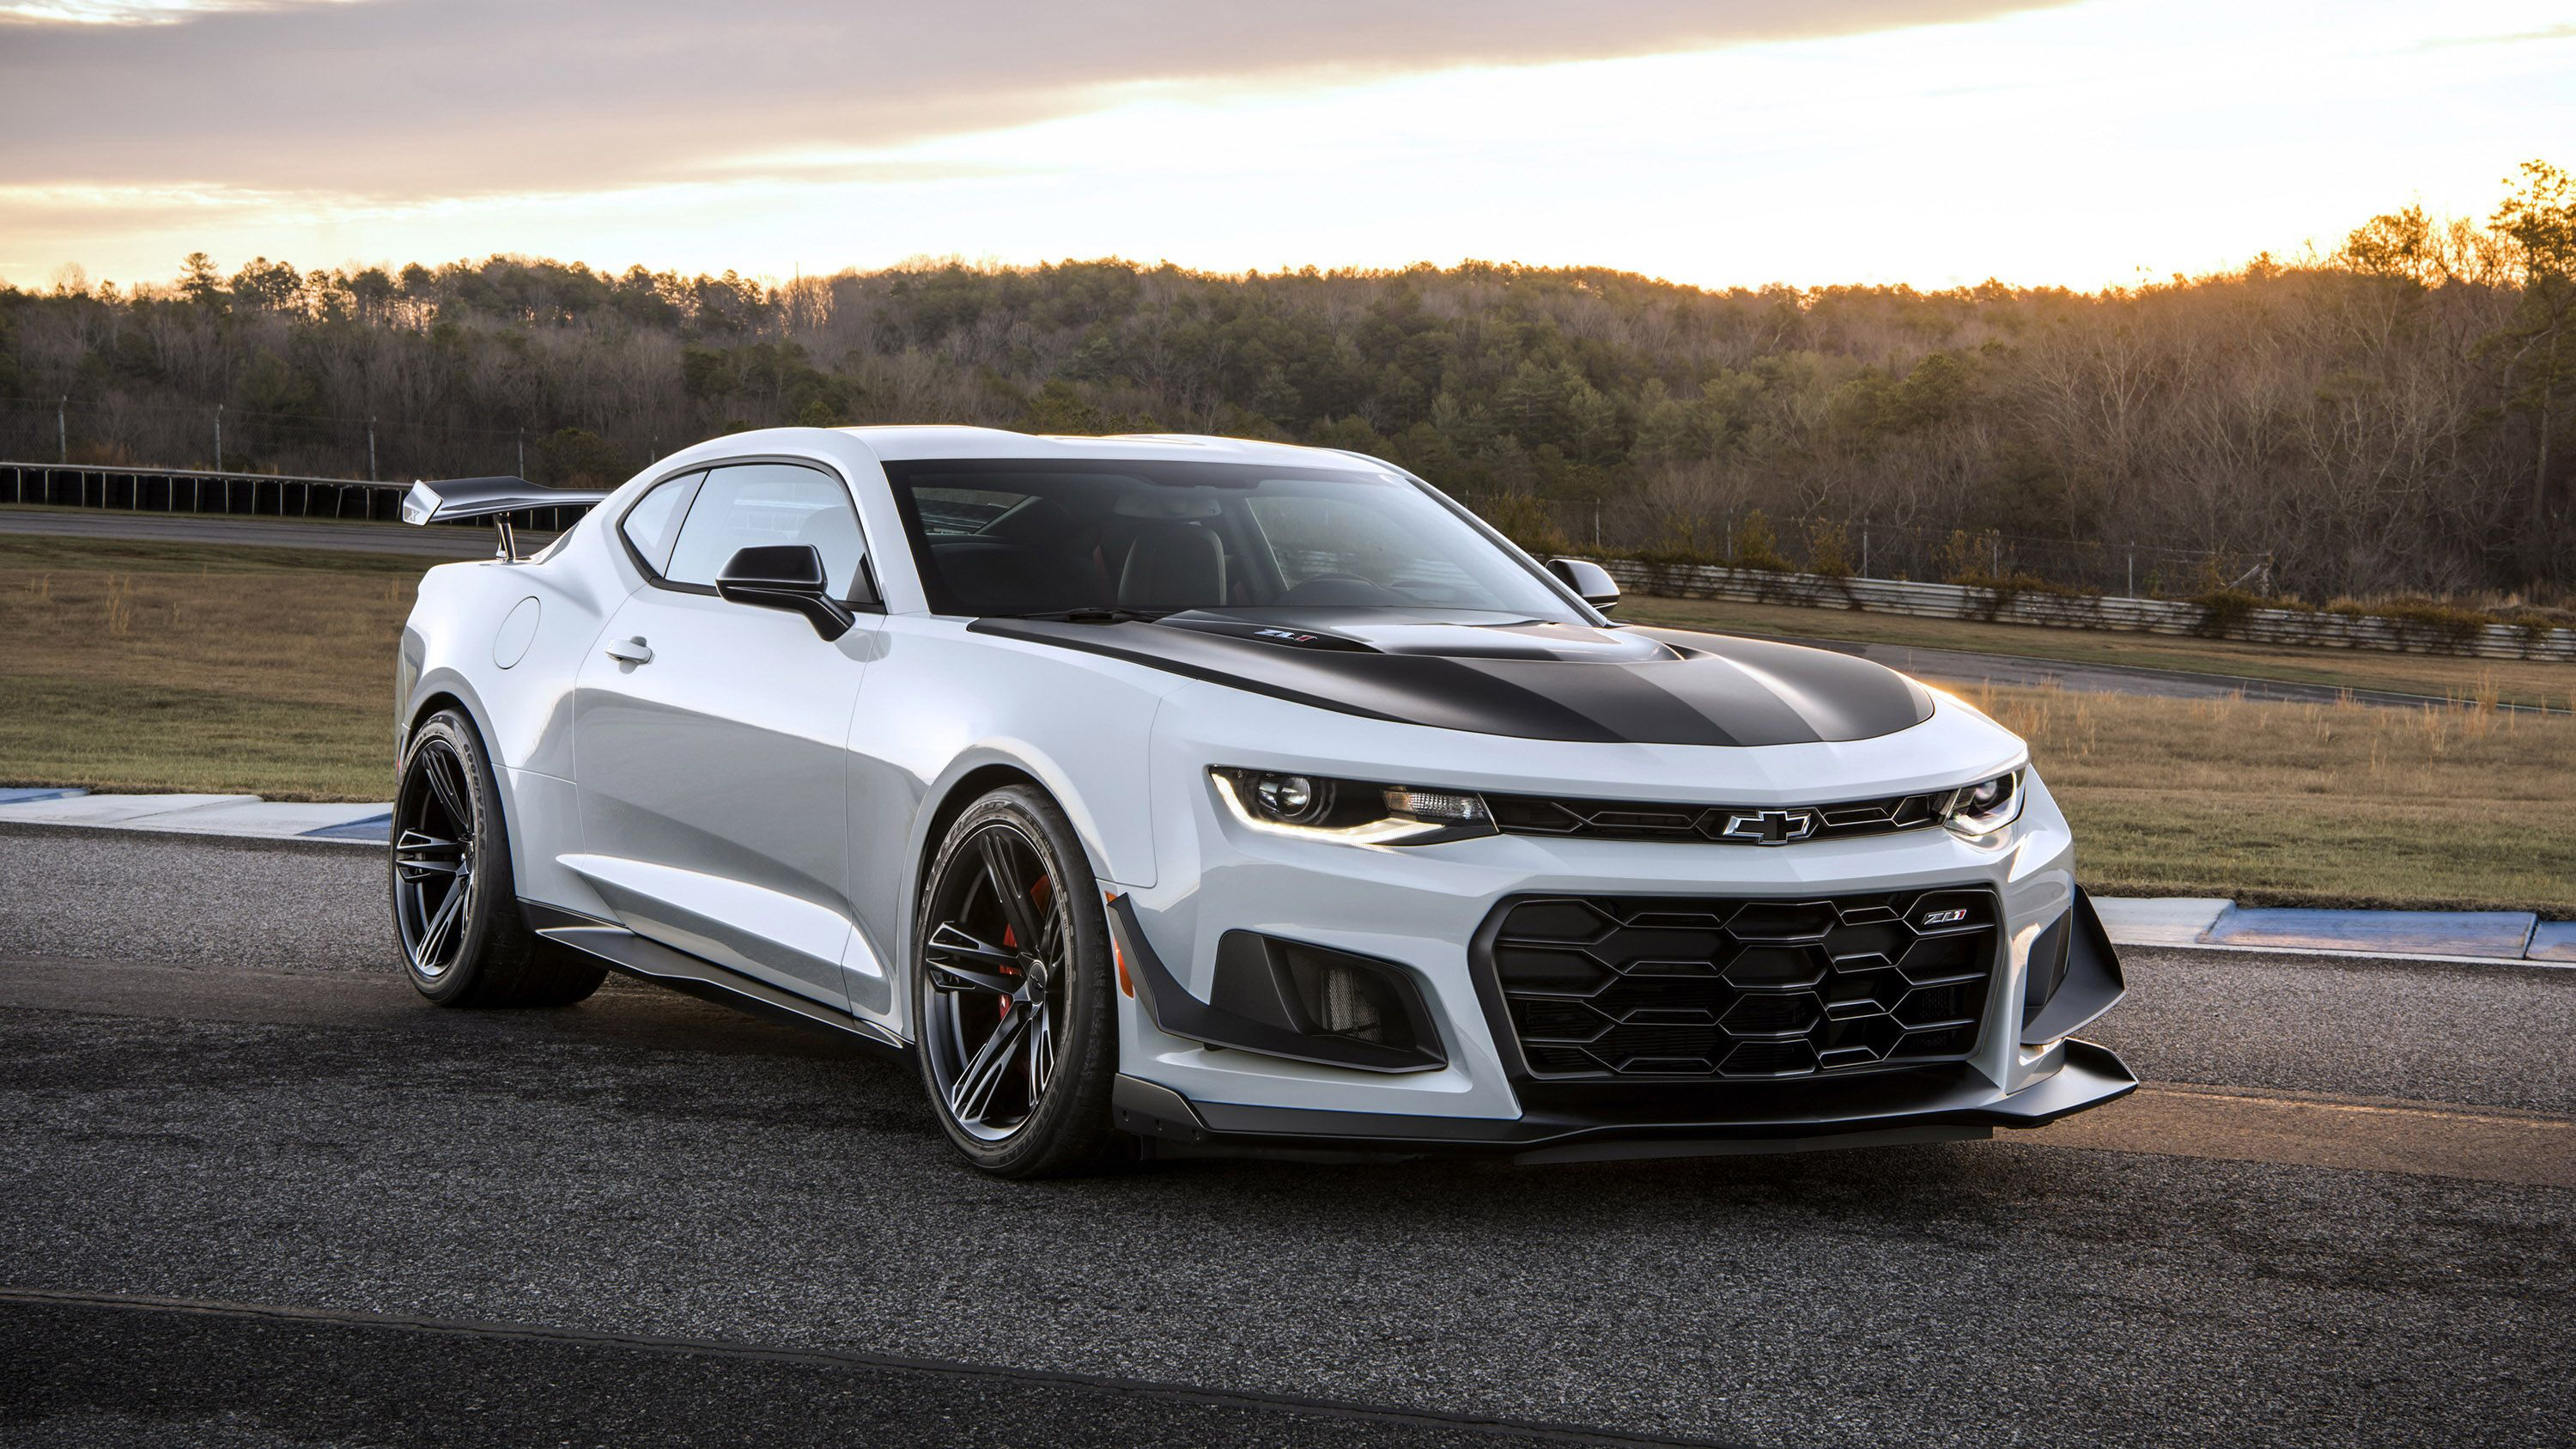 Wallpaper Of The Day 2019 Chevy Camaro Zl1 1le With Images